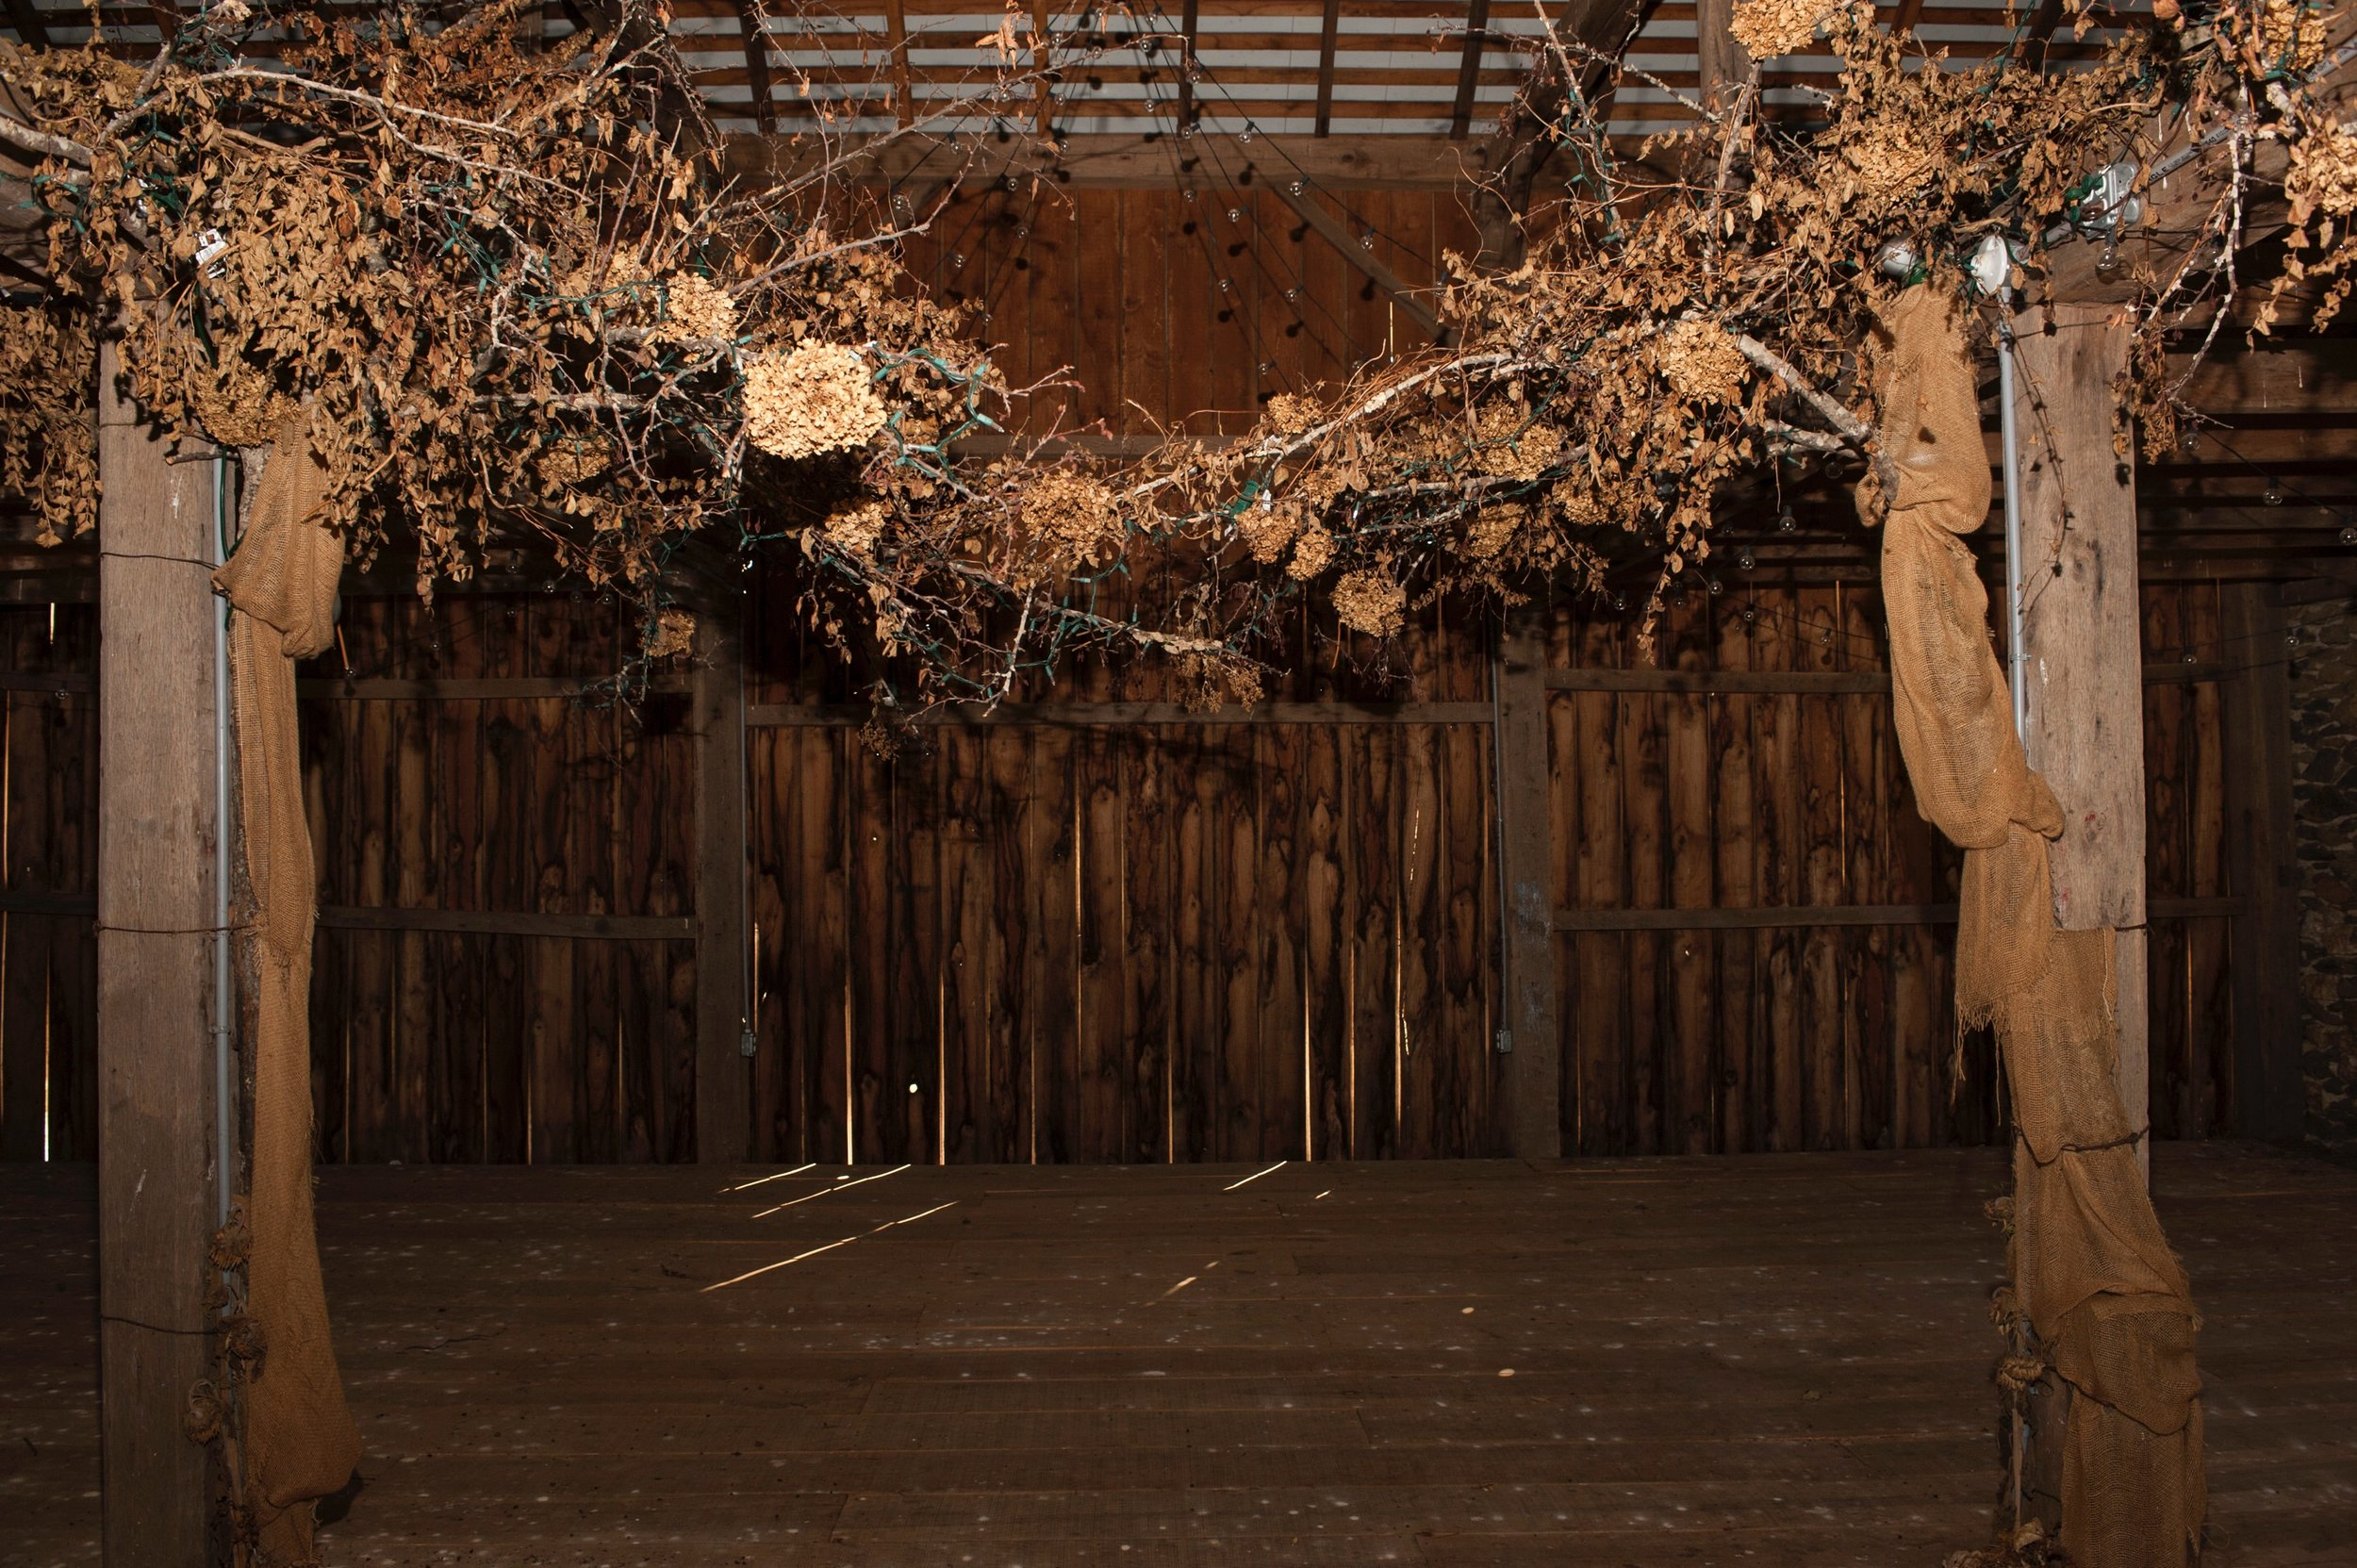 A garland of dried flowers from the Crofts' daughter's wedding still decks the barn.